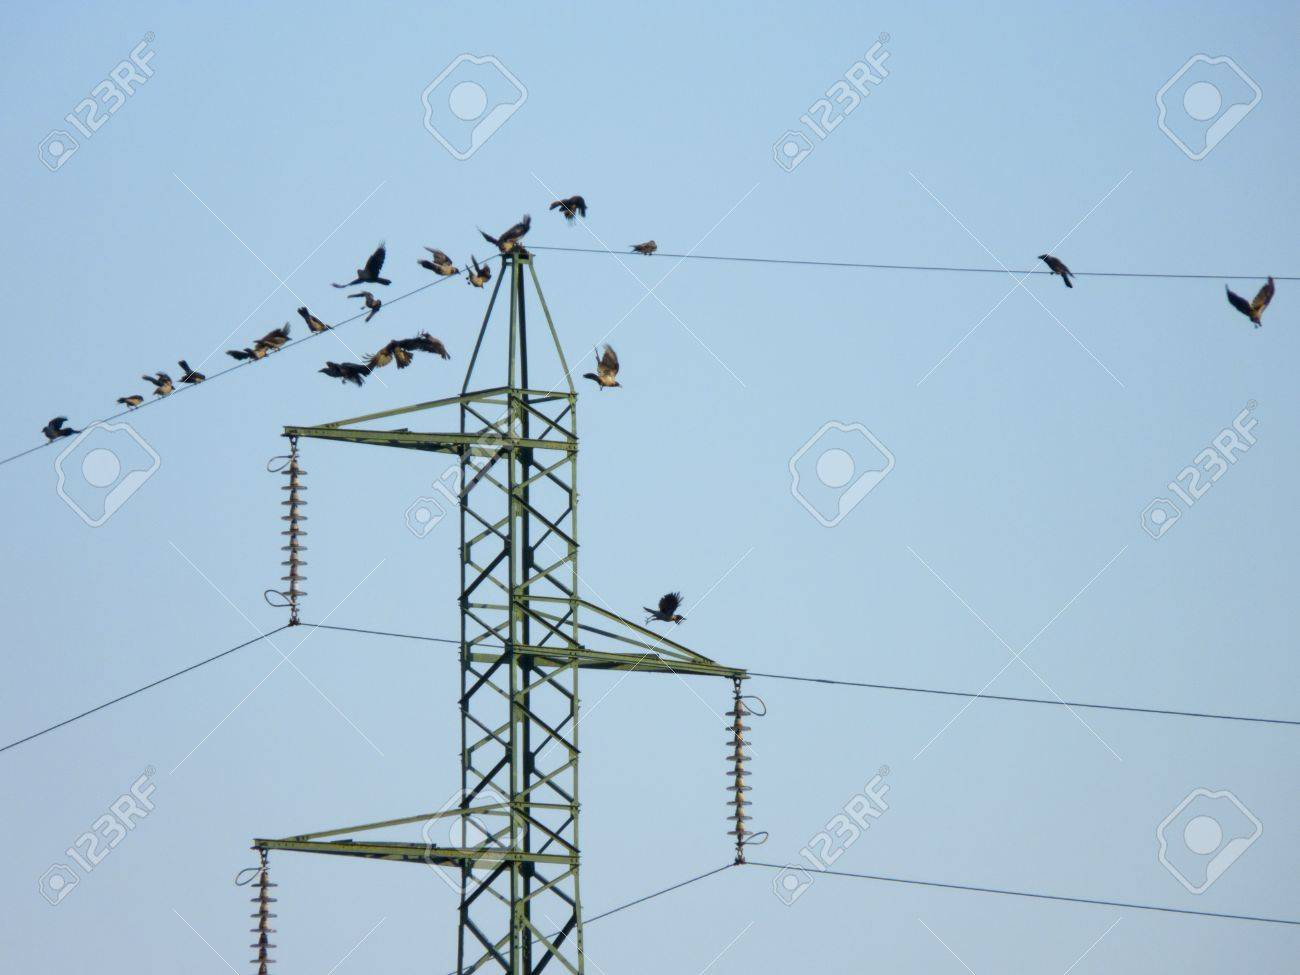 hight resolution of many crow birds flying on the electric wires stock photo picture electrical wires and birds